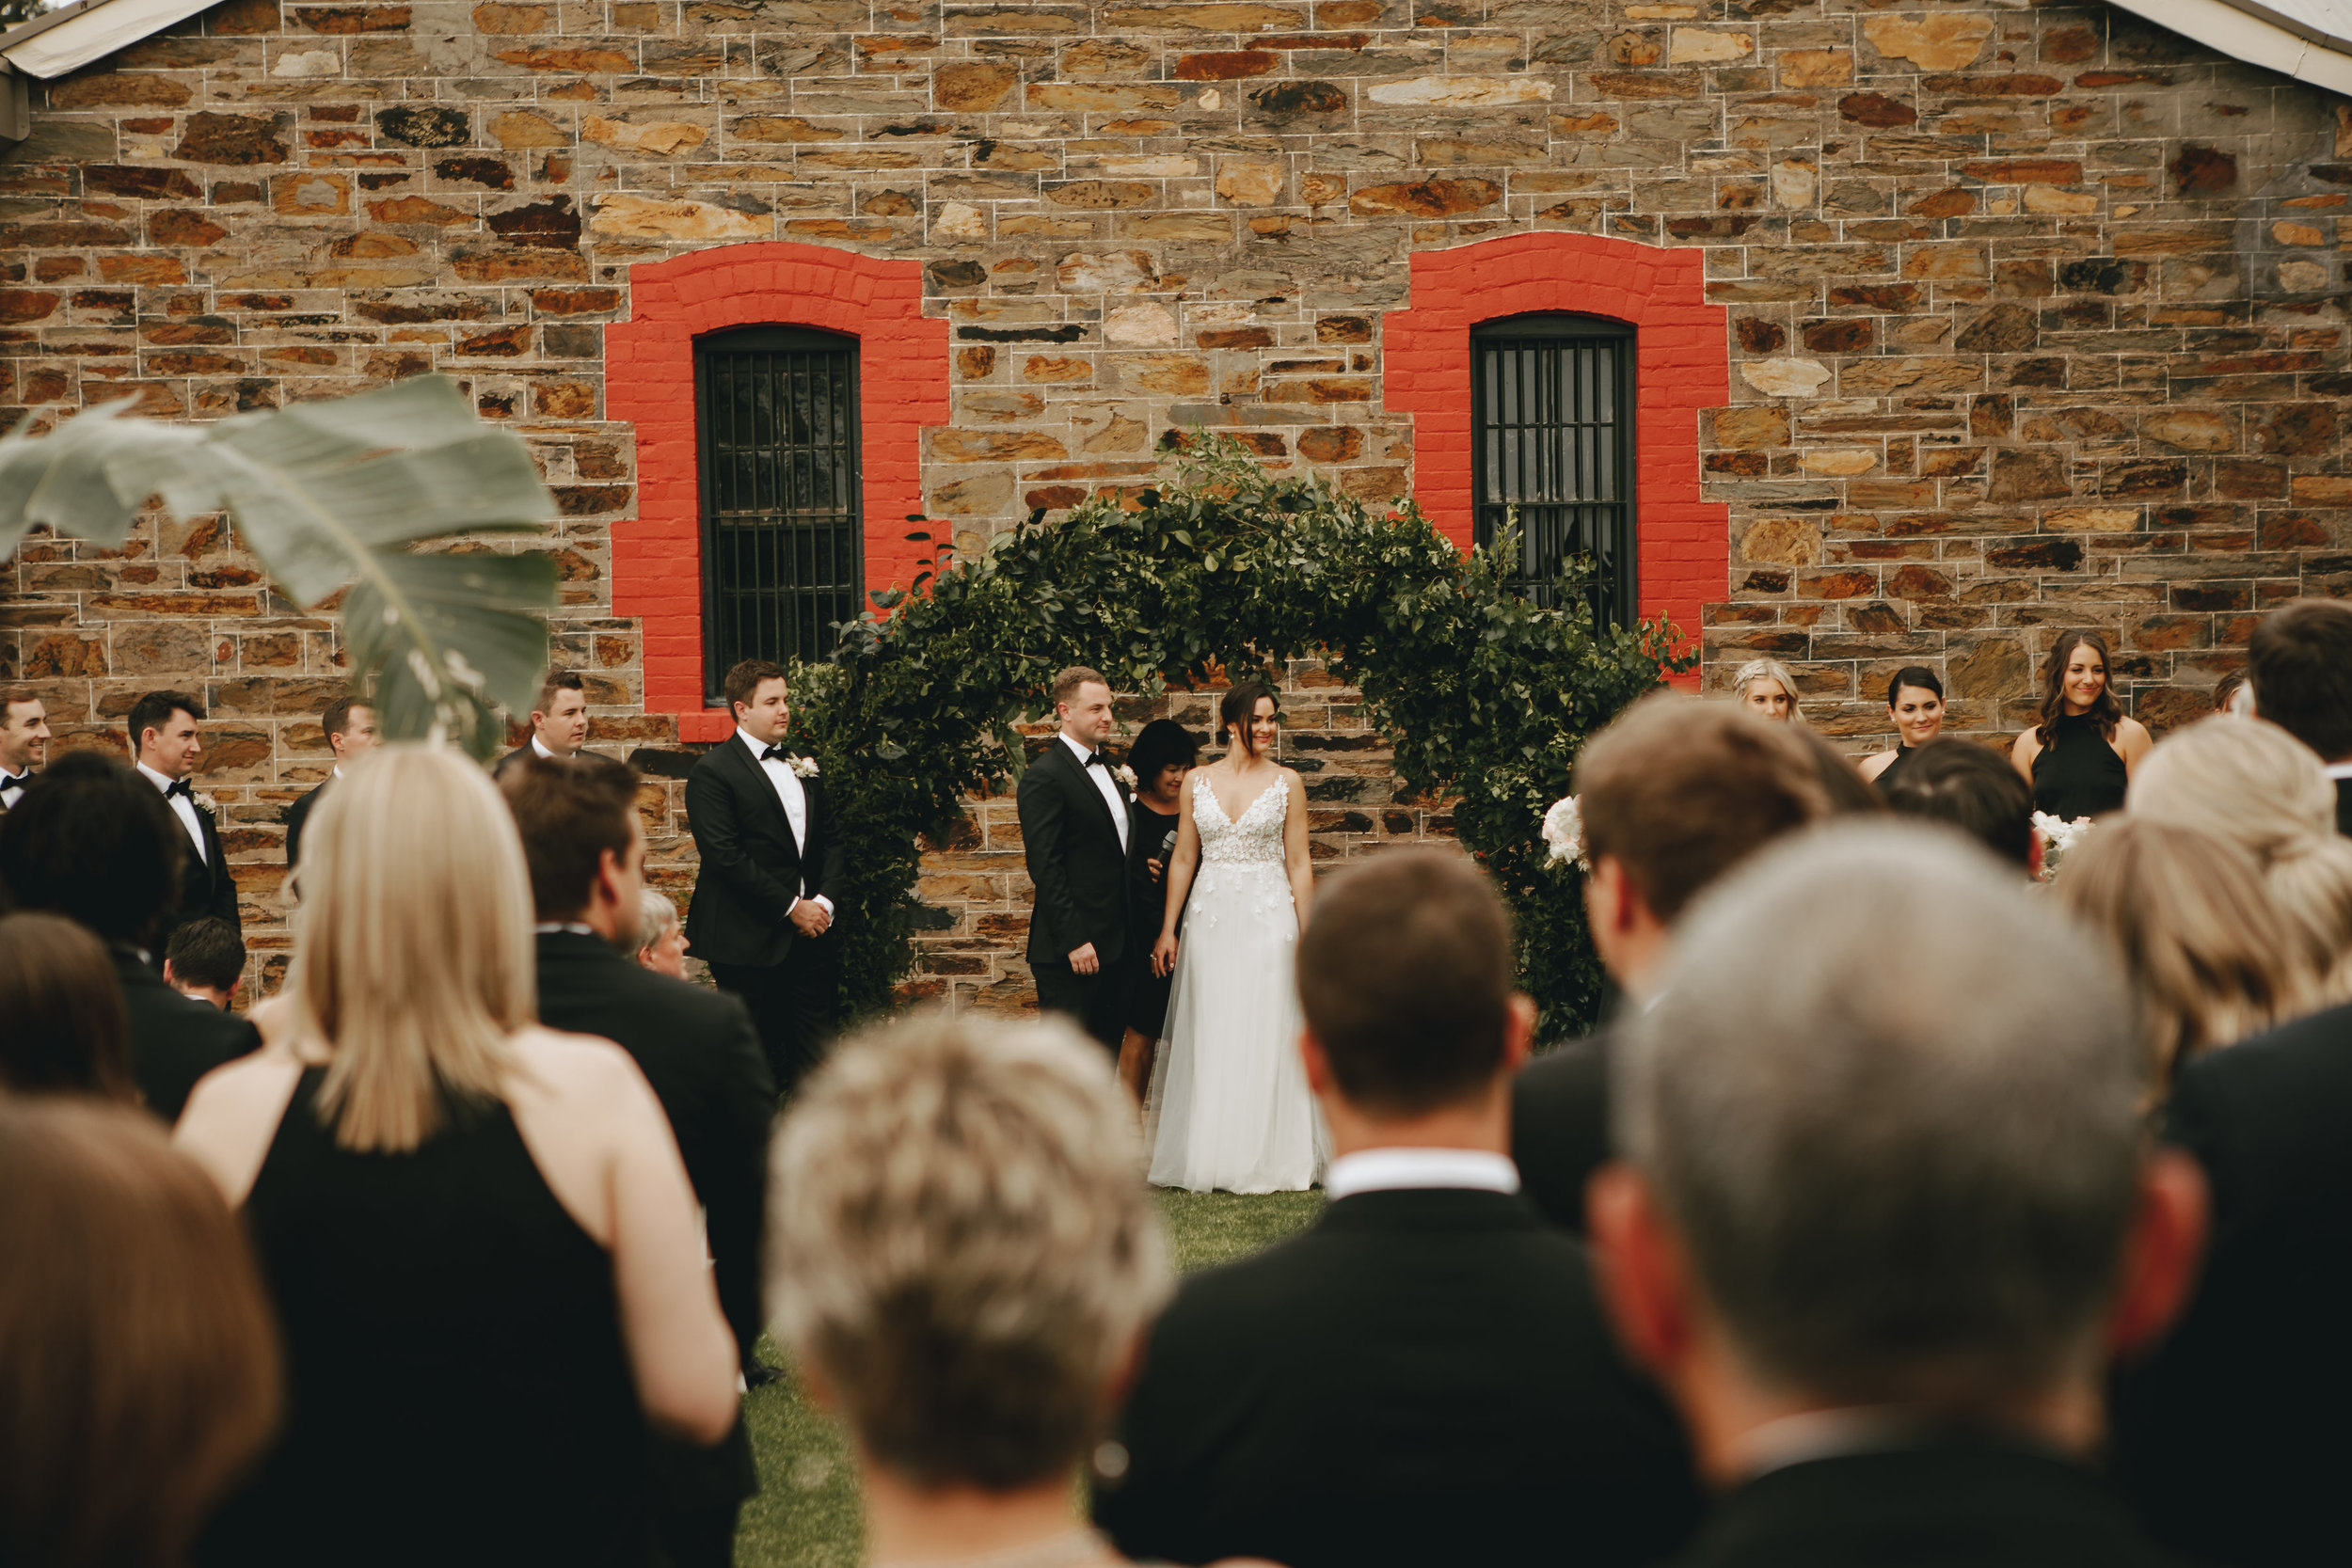 BYBHS_WEDDING_TOM&DIMMI_HI-RES_184.jpg